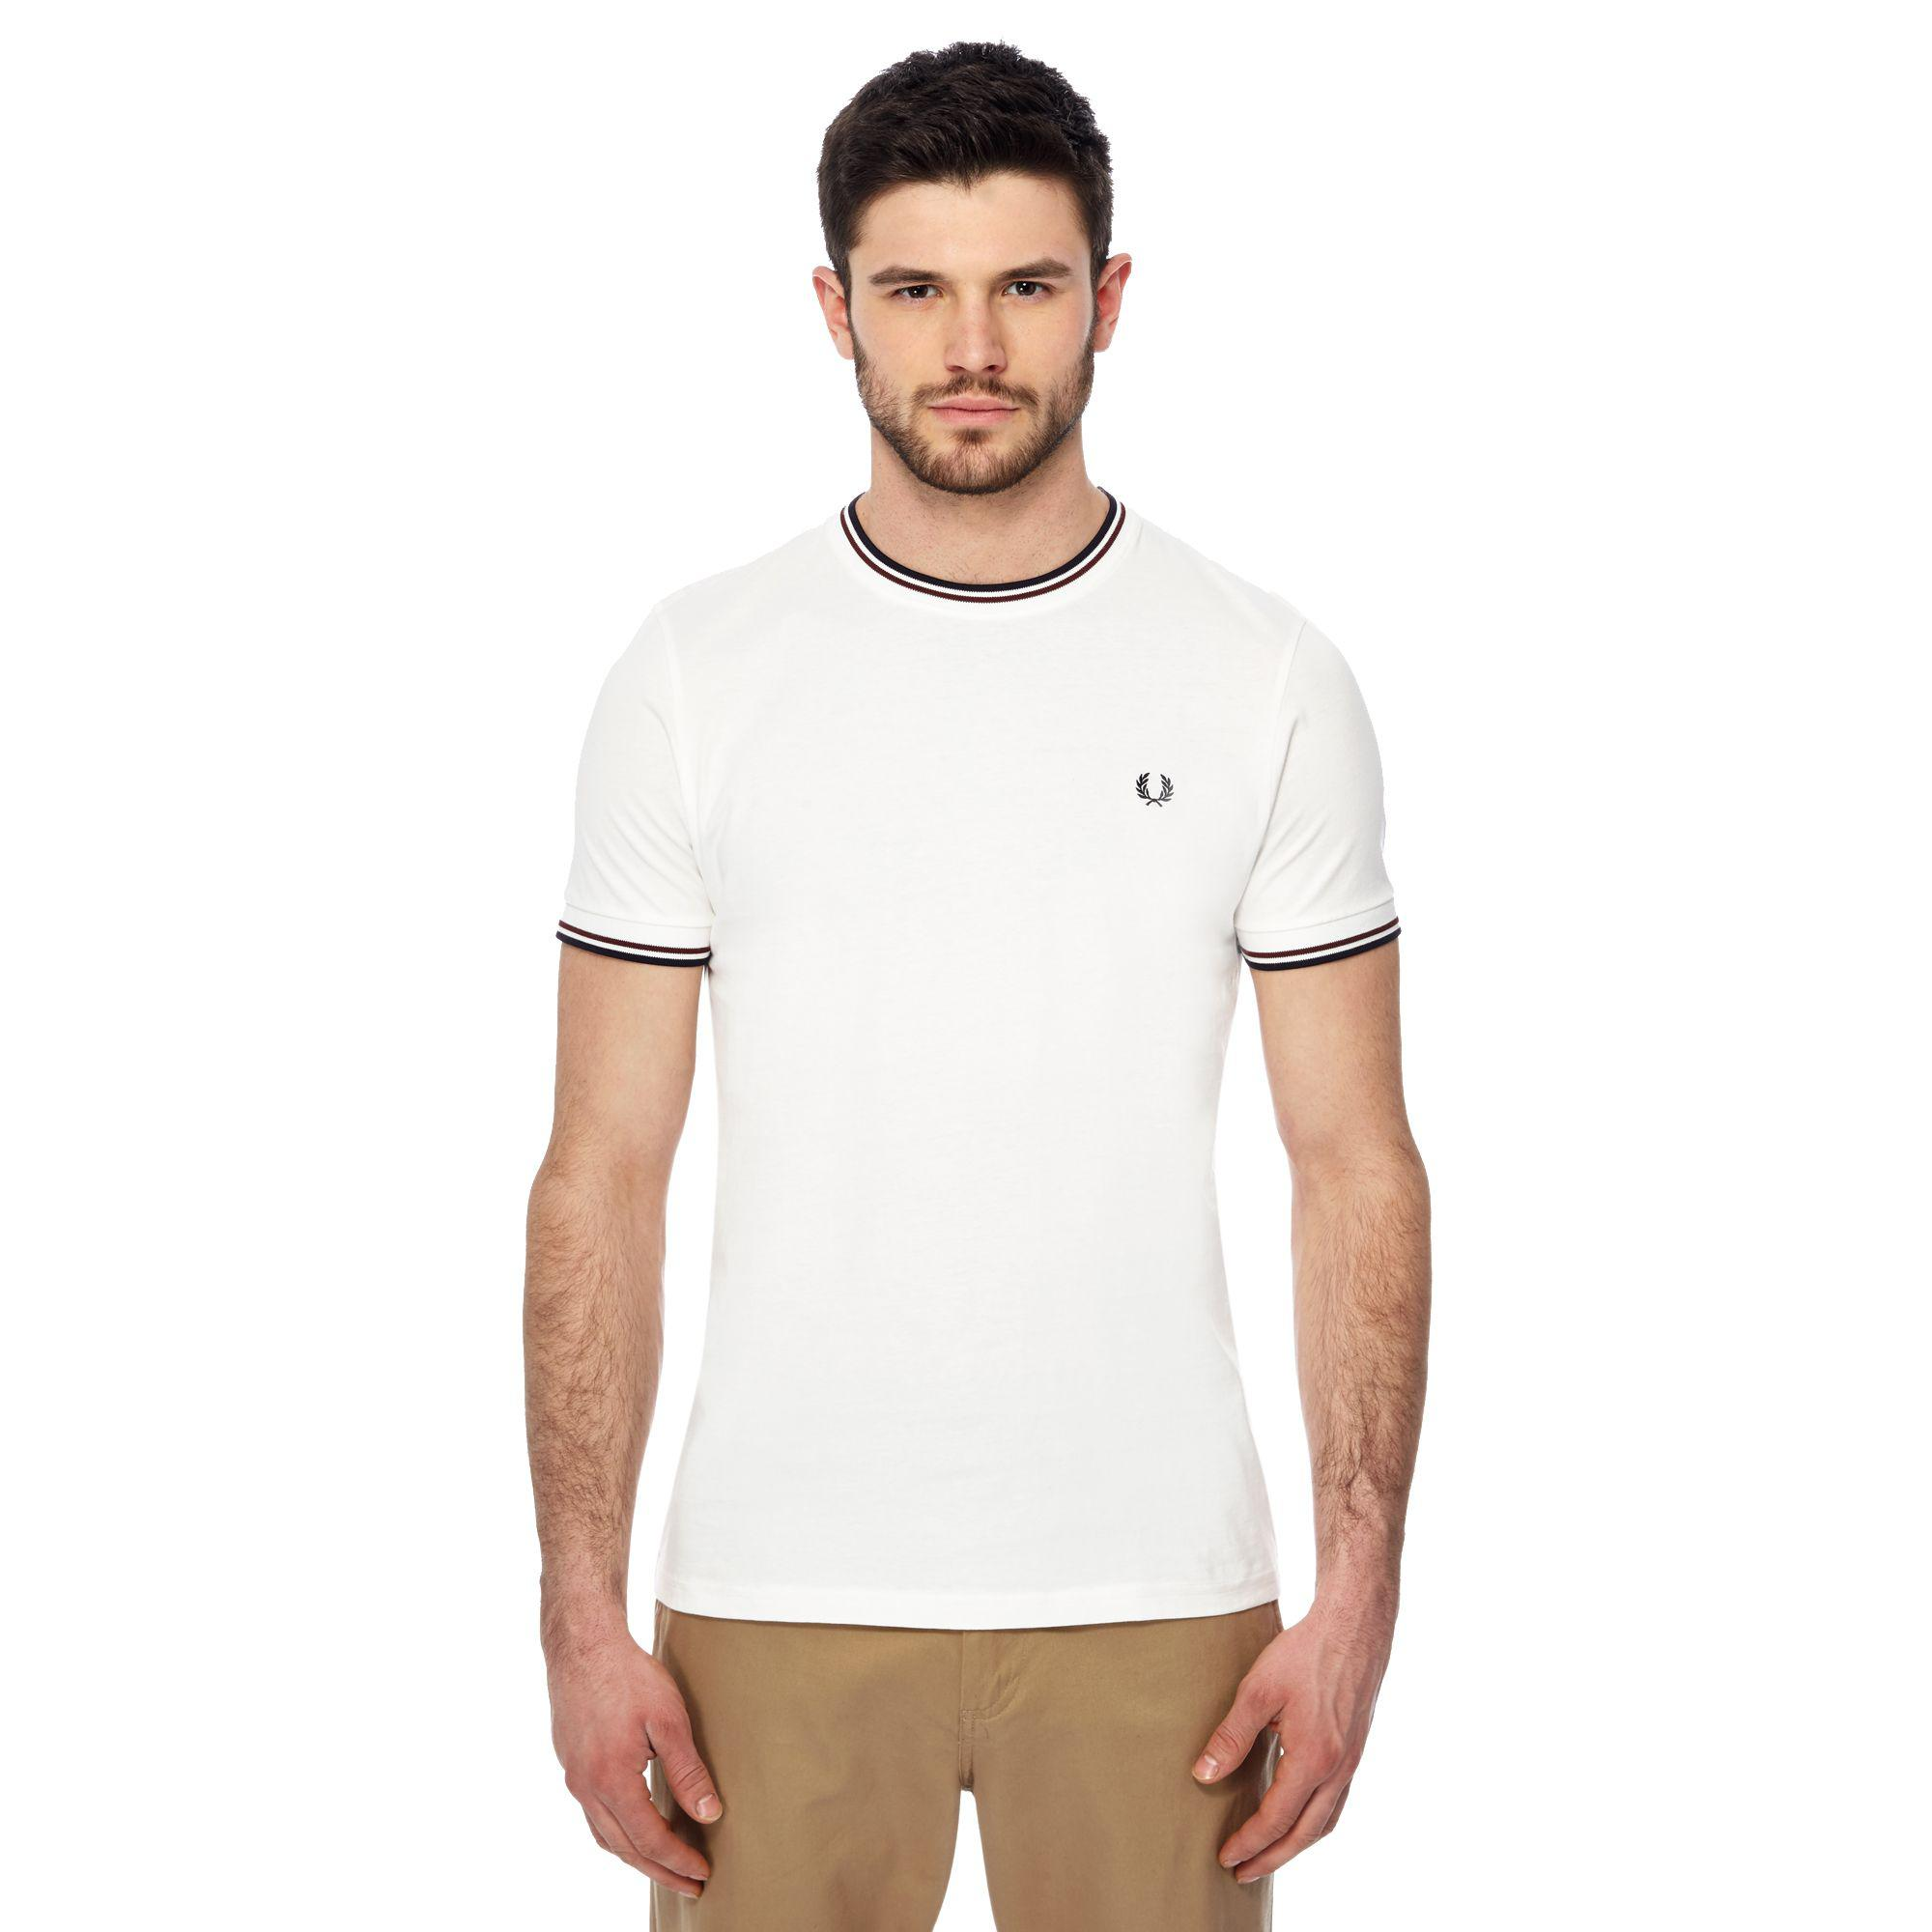 Up to 70% OFF,ggaca.in